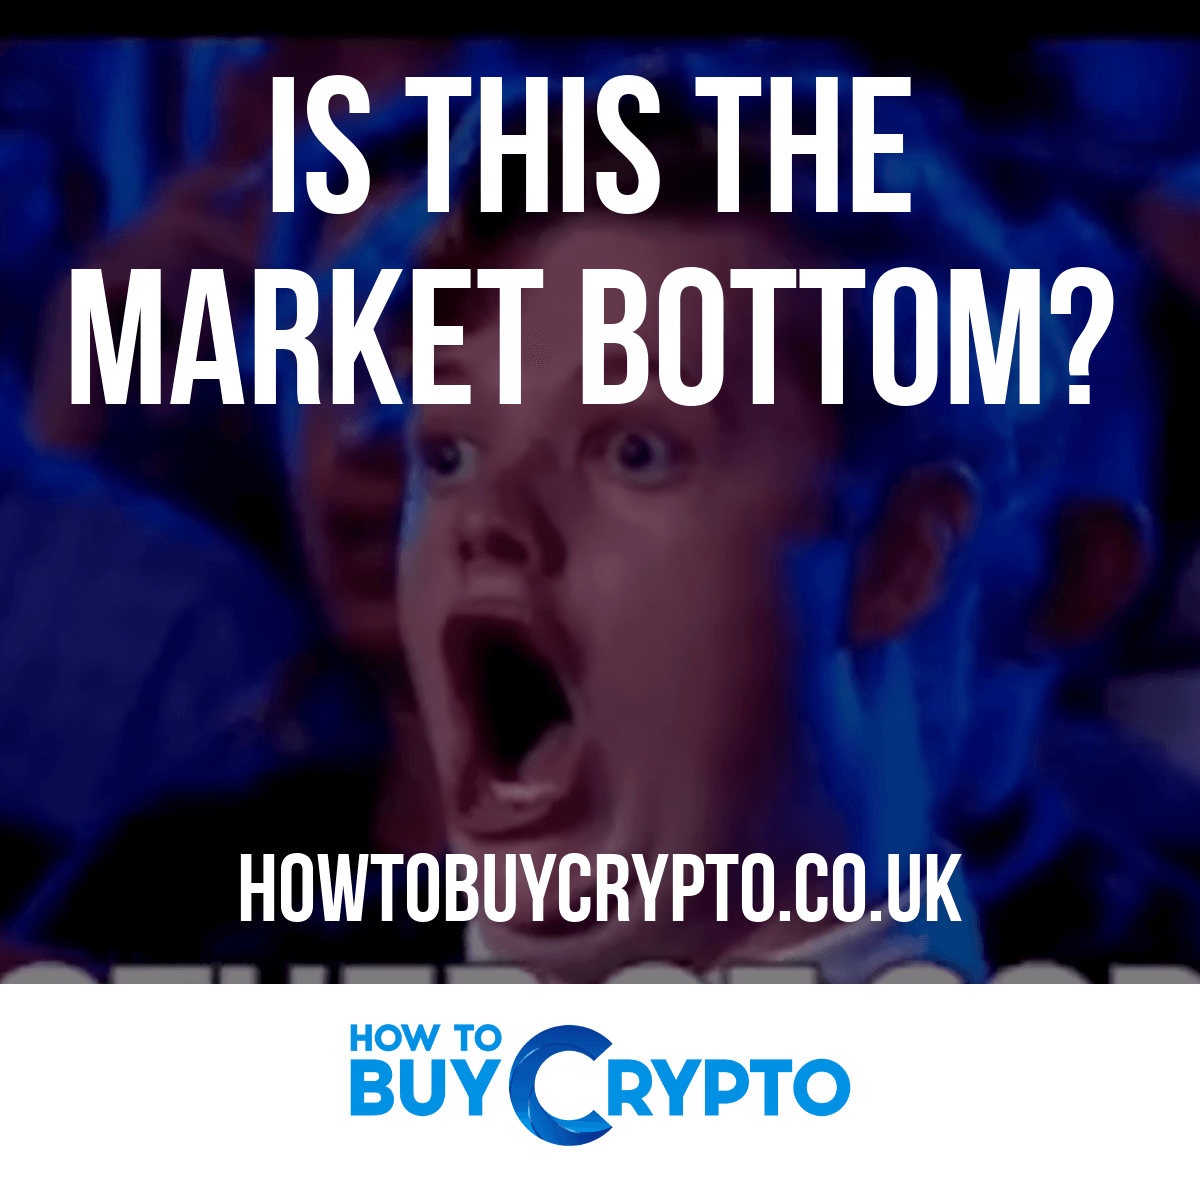 Is this the market bottom?